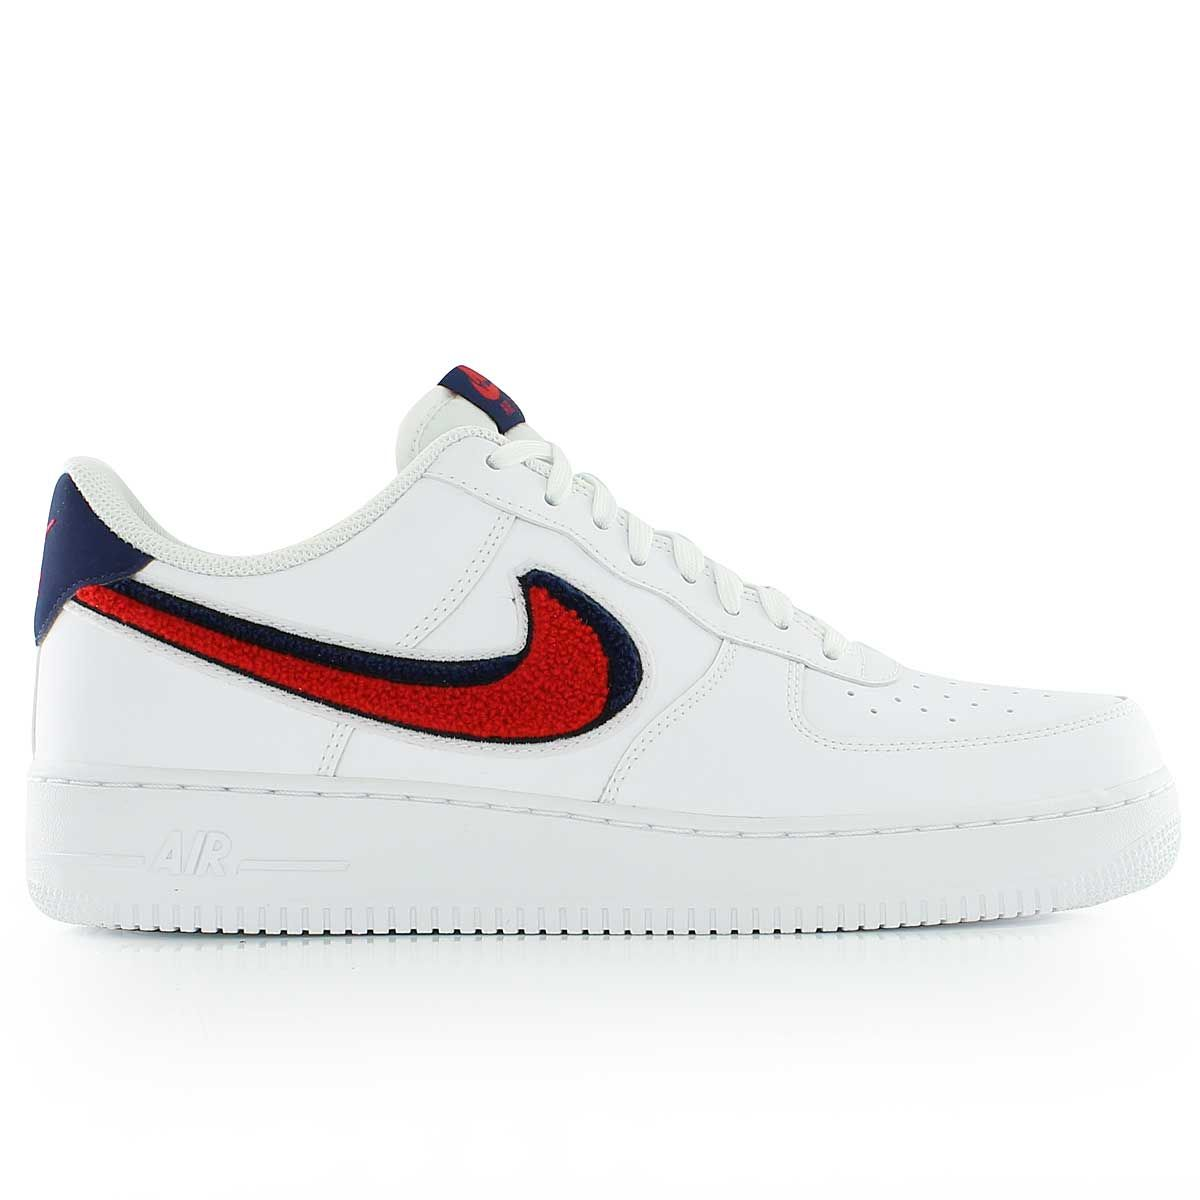 nike AIR FORCE 1 '07 LV8 WHITE/UNIVERSITY RED-BLUE VOID ...